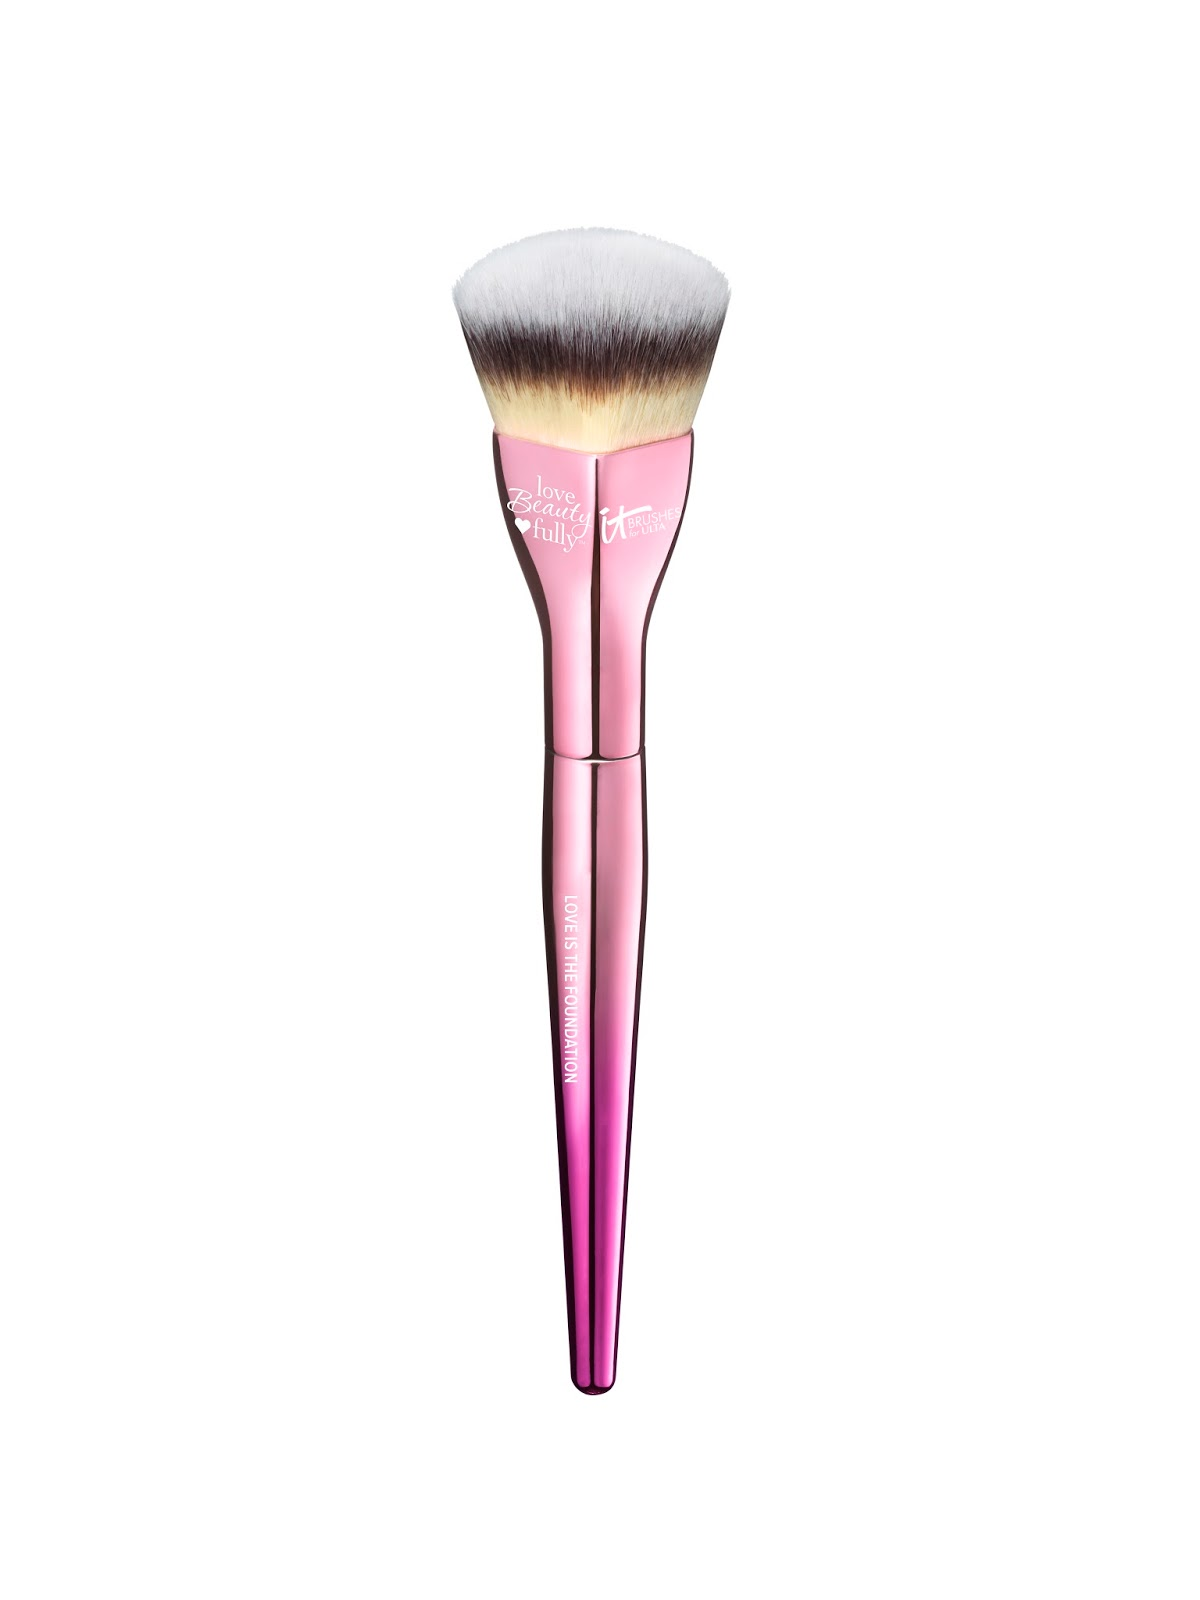 Foundation brush It Cosmetics